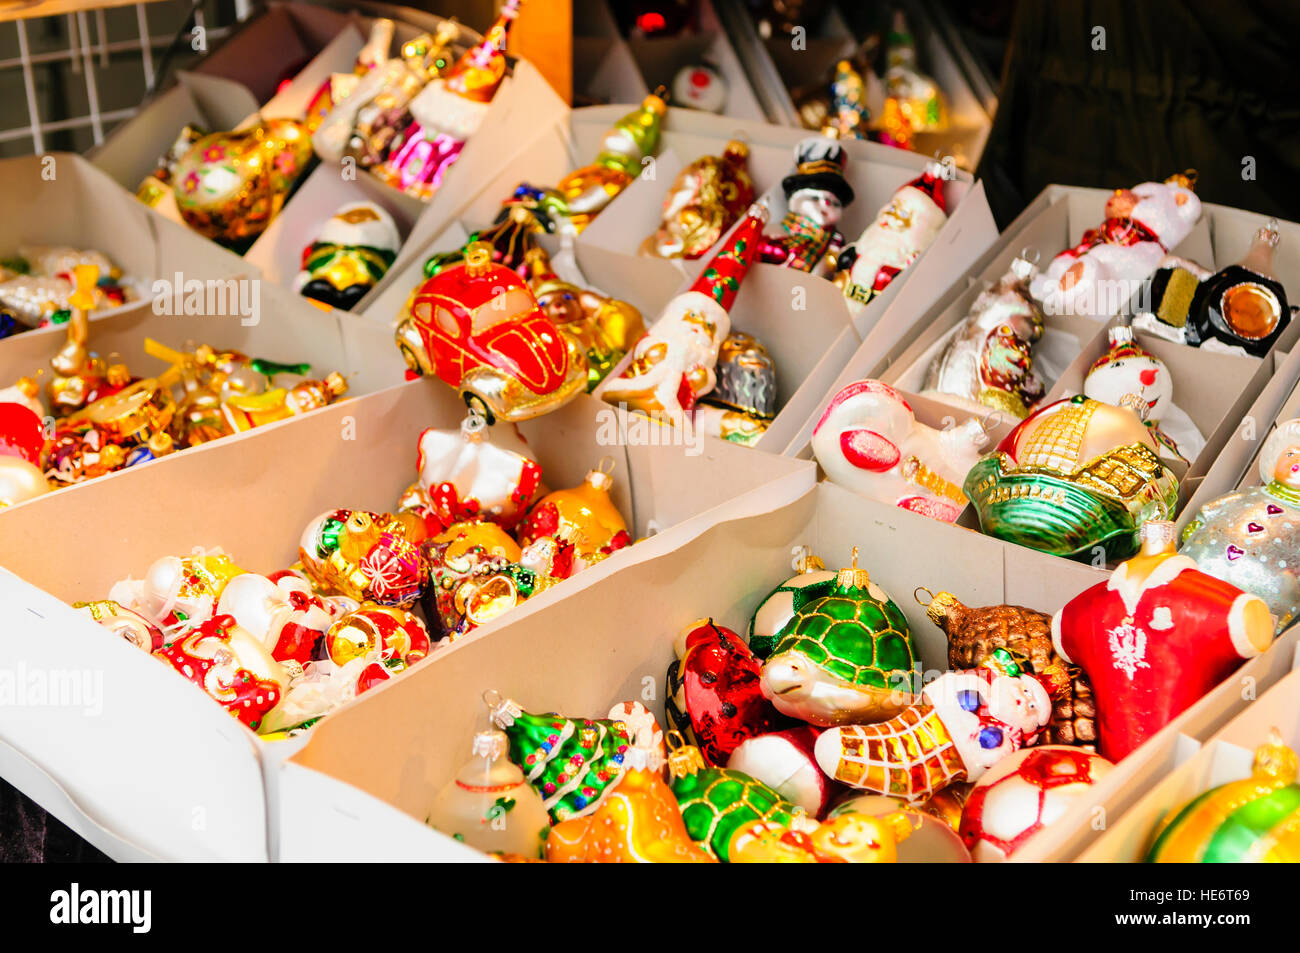 Christmas decorations on sale at a stall at the Christmas Market, Gdansk, Poland Stock Photo